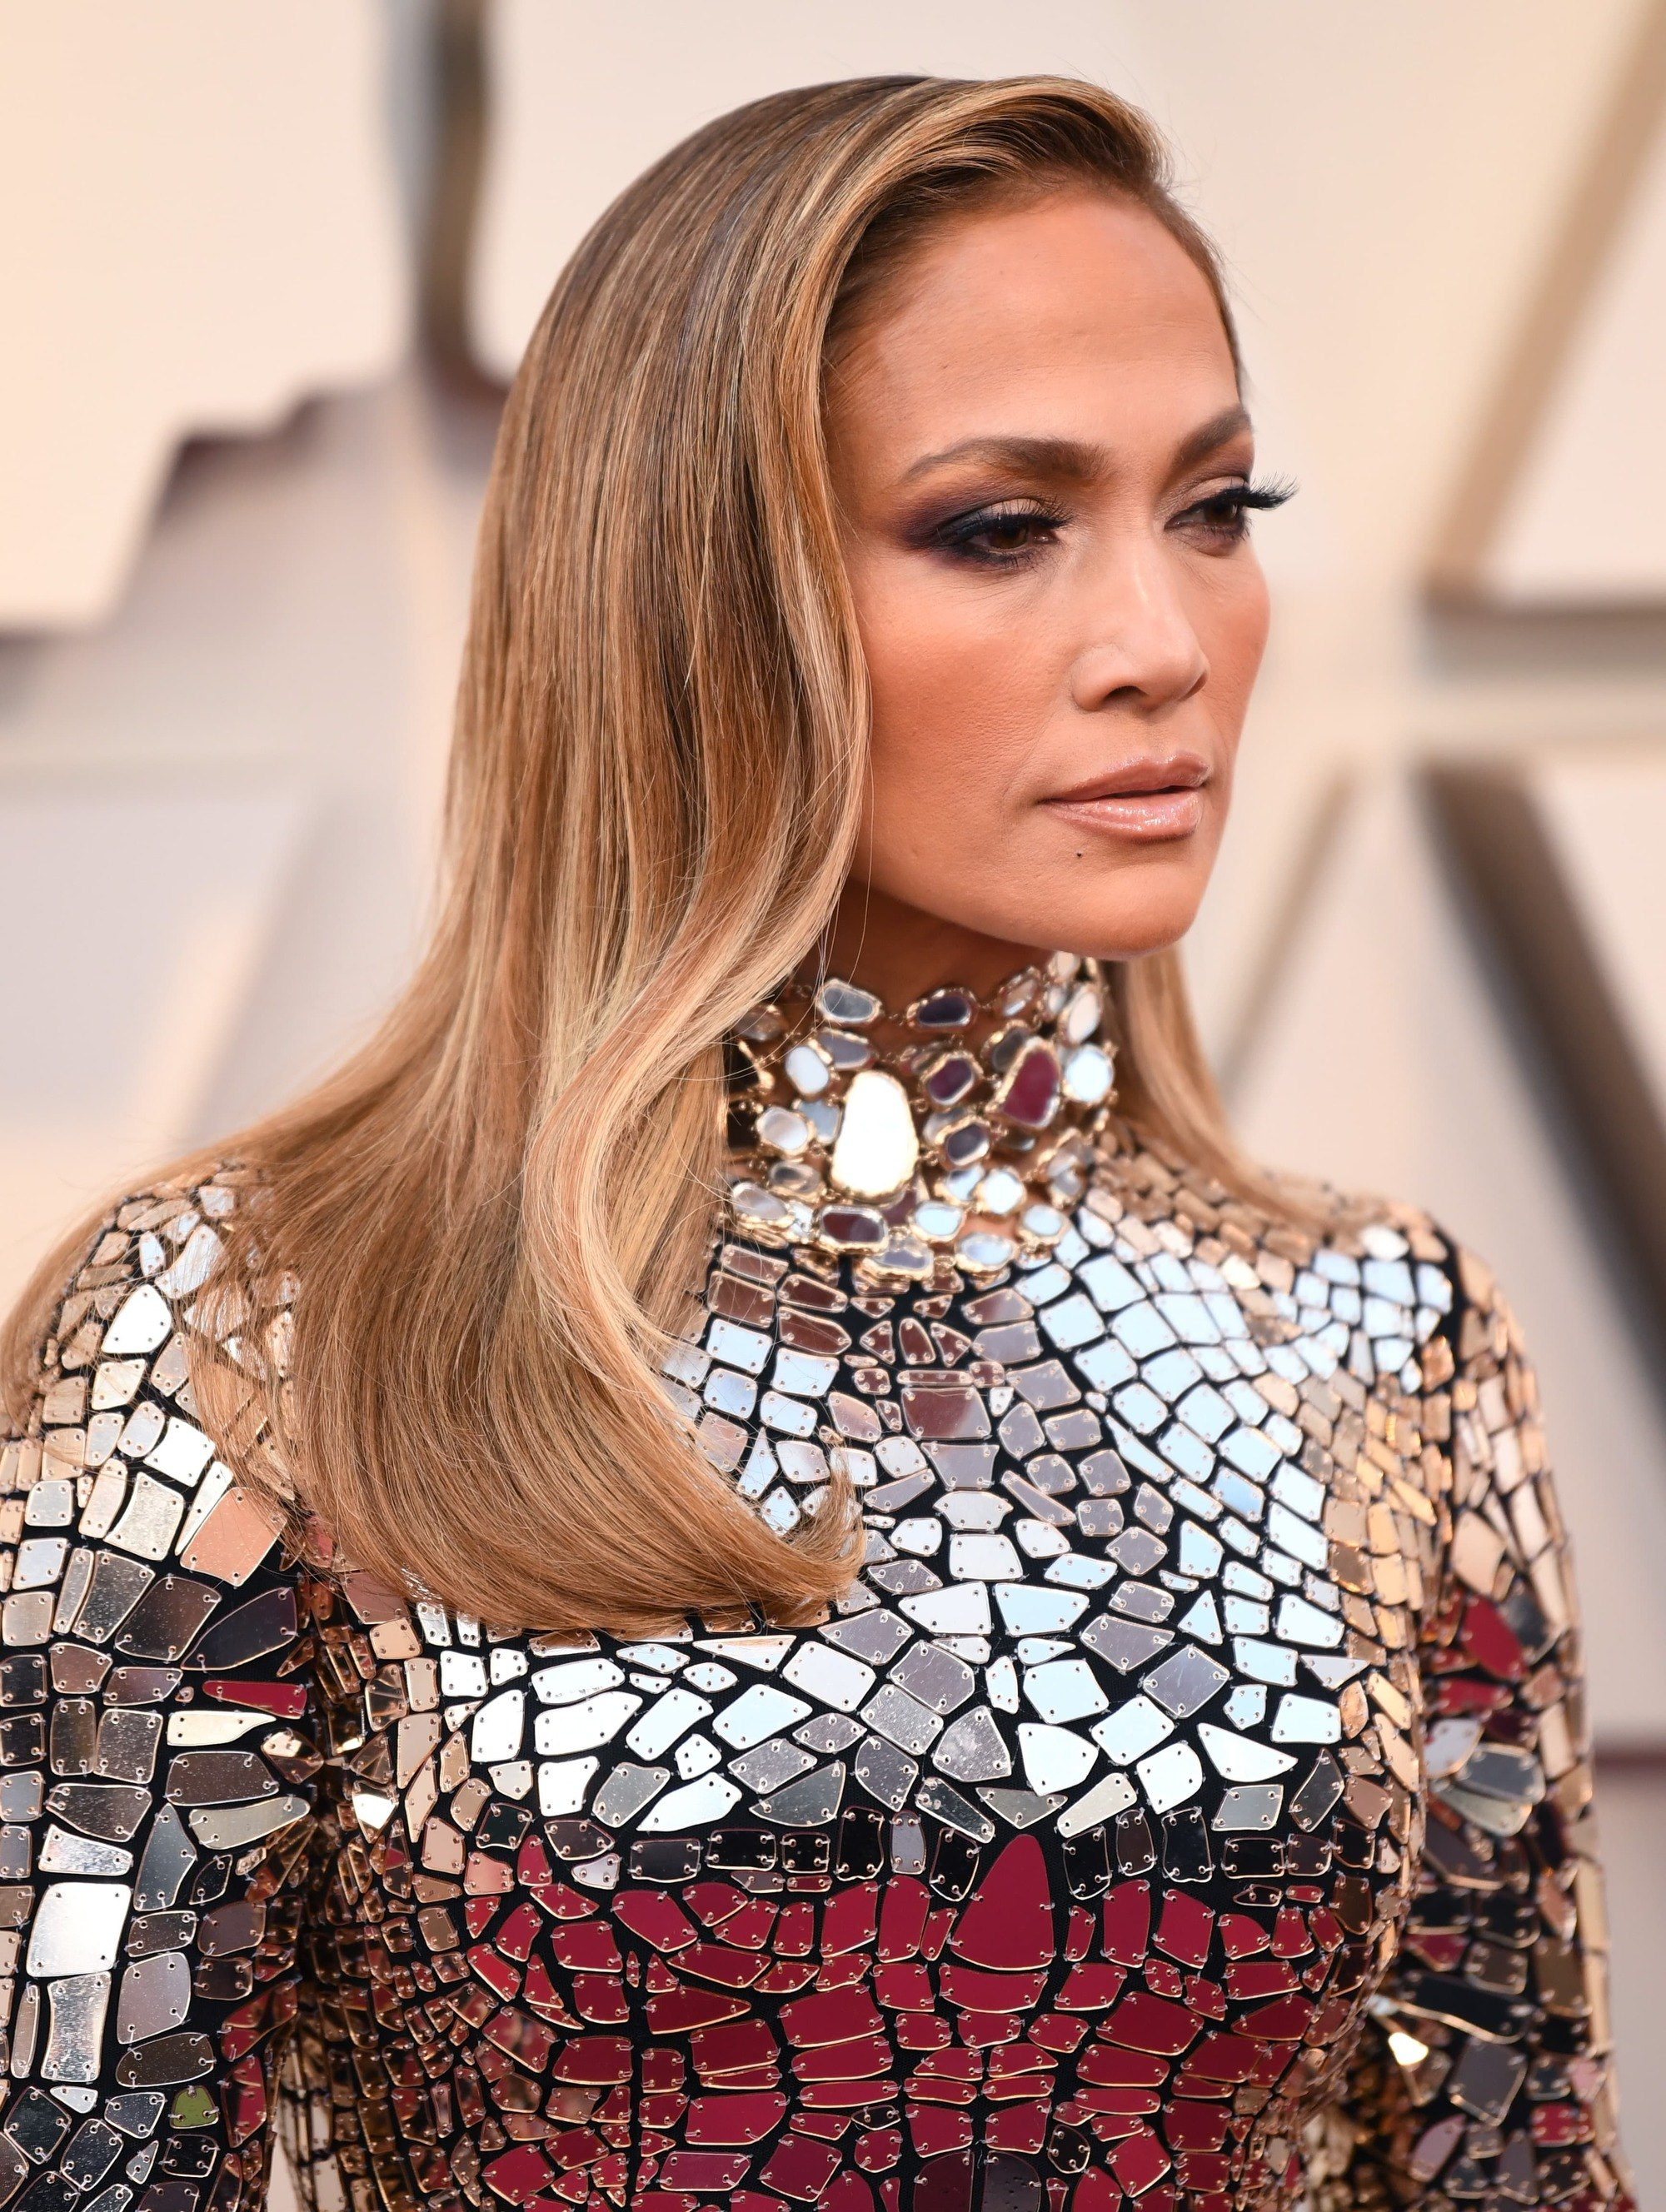 Oscars 2019 hairstyles: Jennifer Lopez (J Lo) at the 2019 Oscars with side-swept wavy mid-length bronde hair, wearing a high neck sequin dress